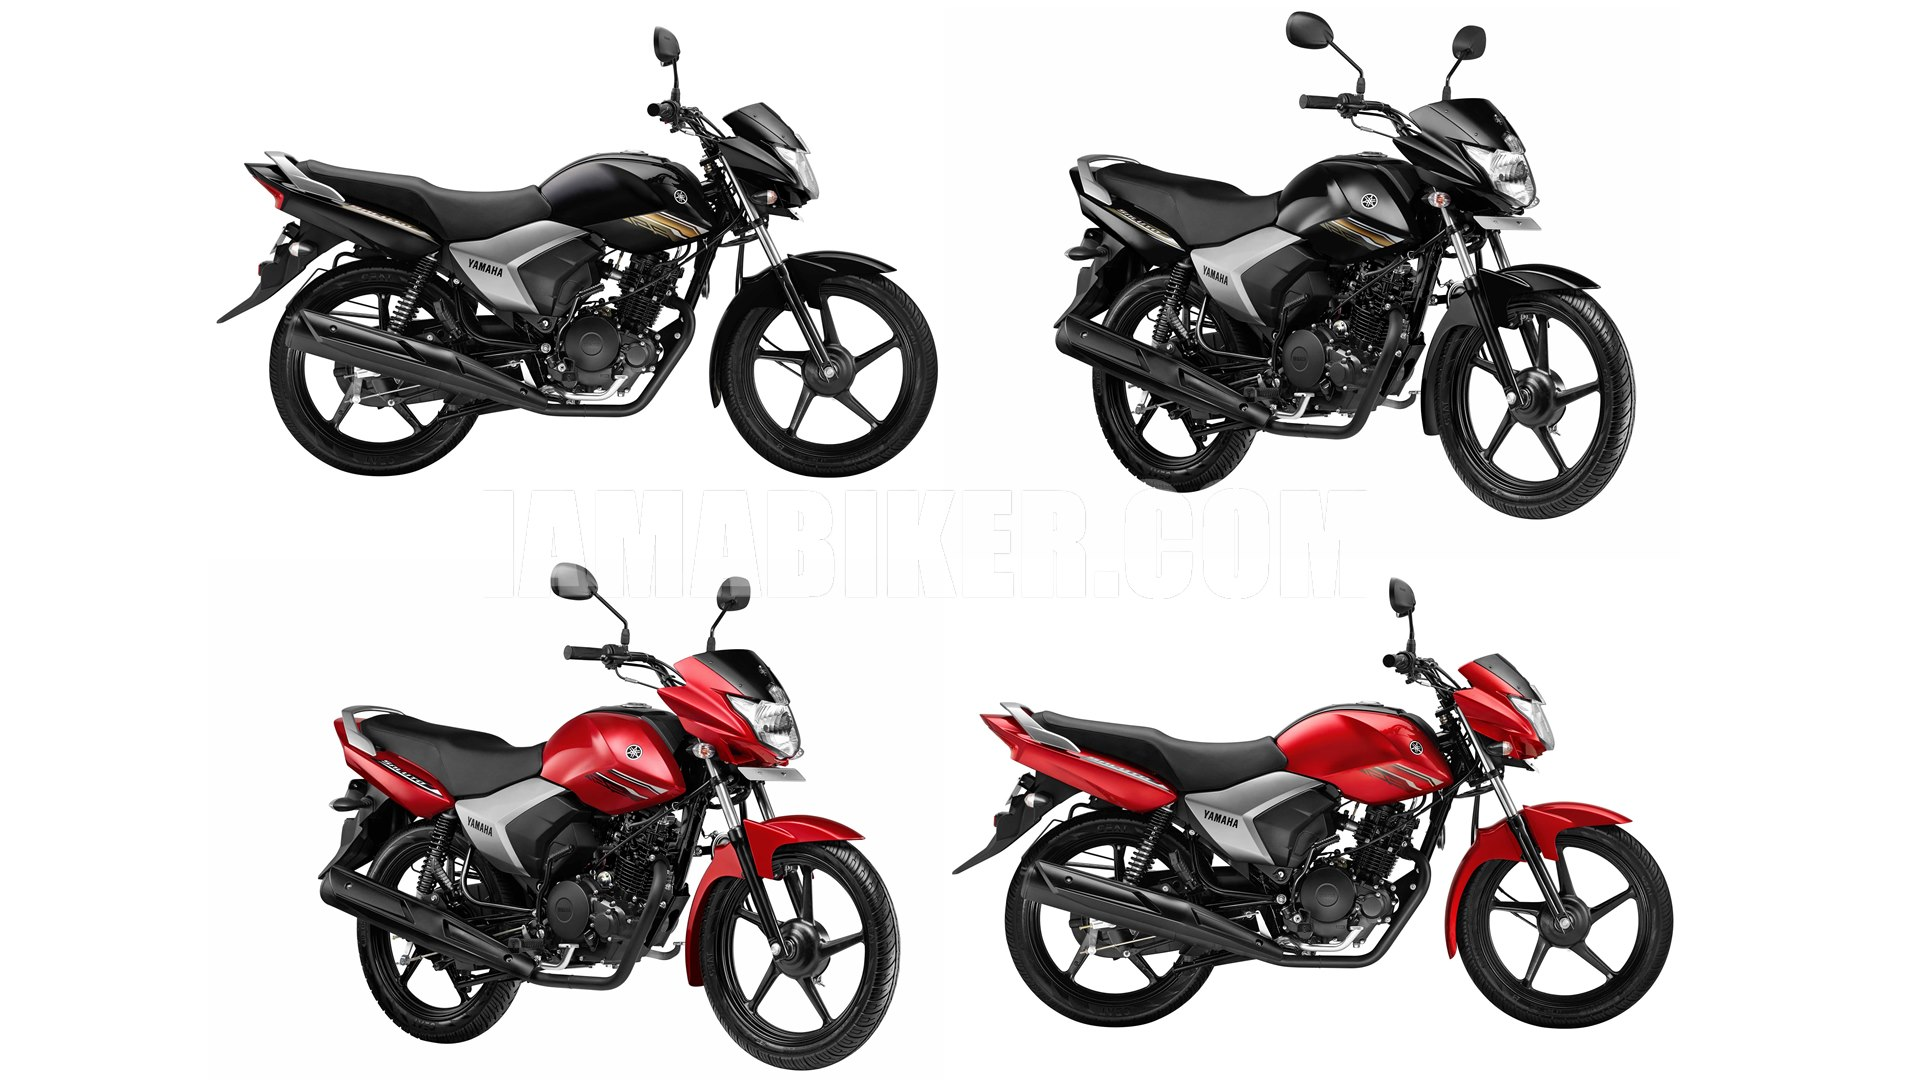 Yamaha Saluto 125 all colour options